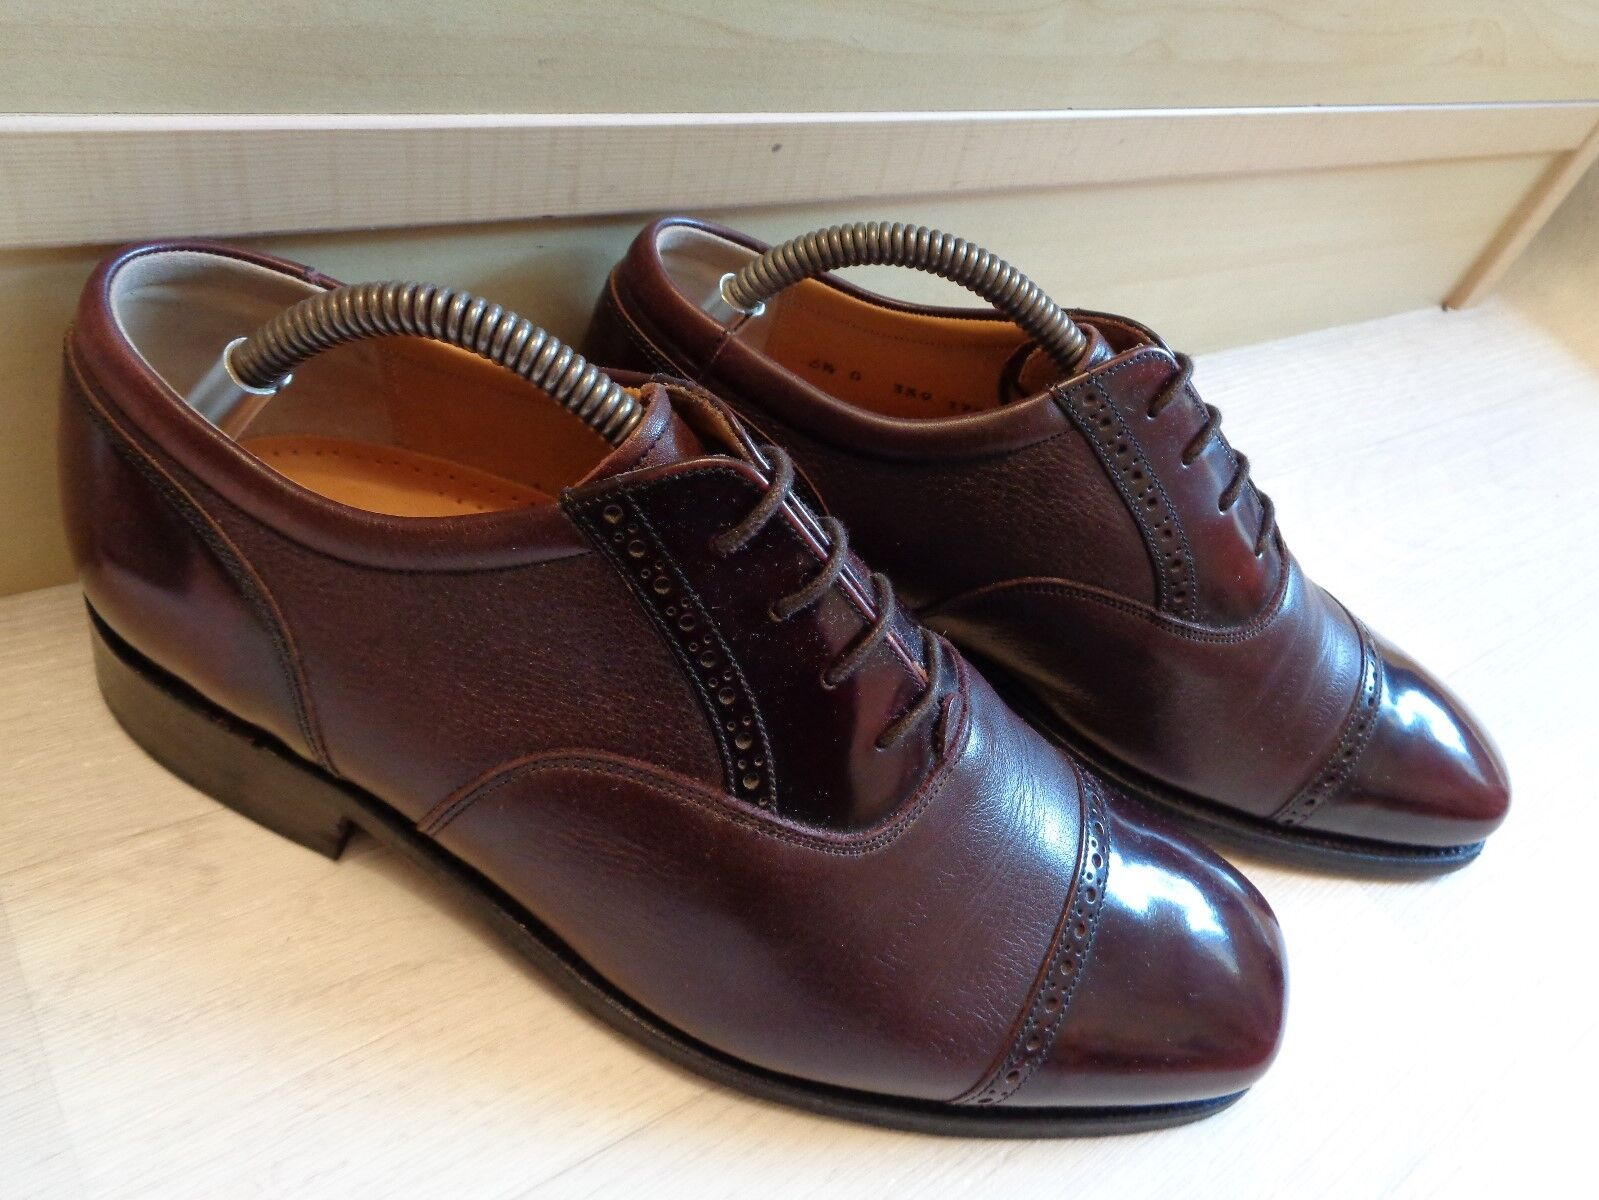 Barker burgundy brogue polished cap toe leather oxford Goodyear Wide